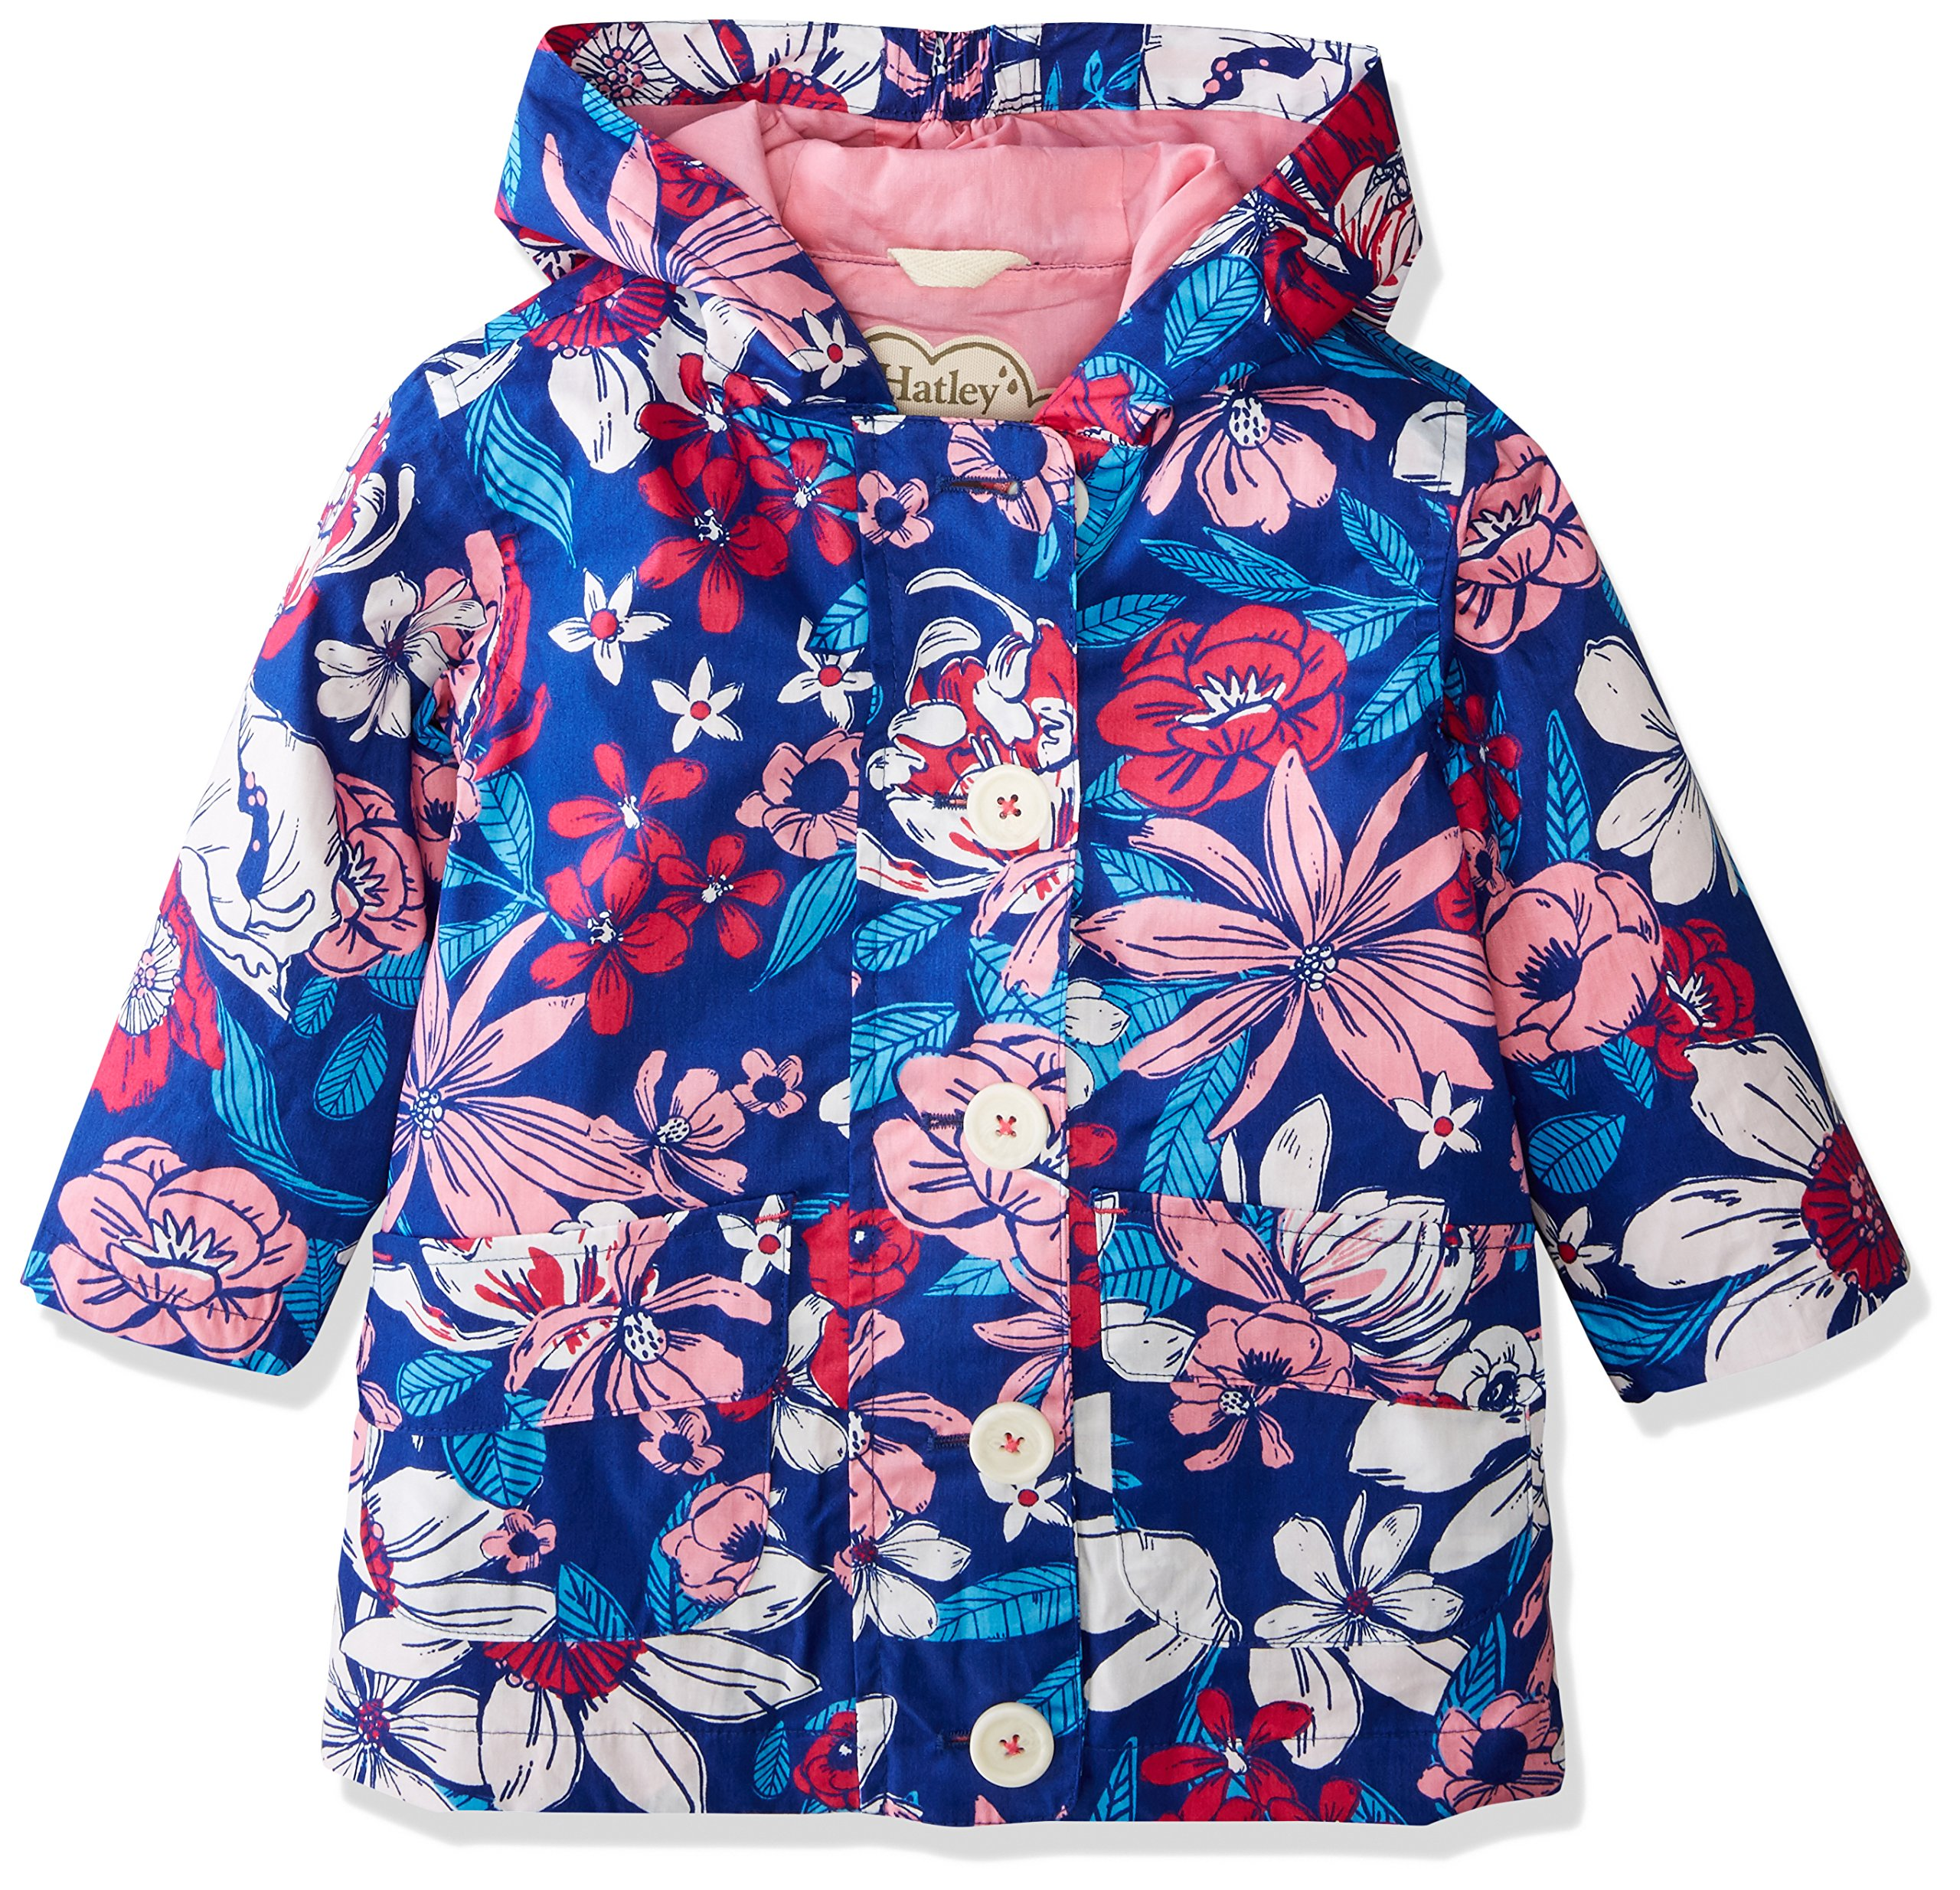 Hatley Big Girls' Cotton Coated Raincoat, Miyako Blooms, 10